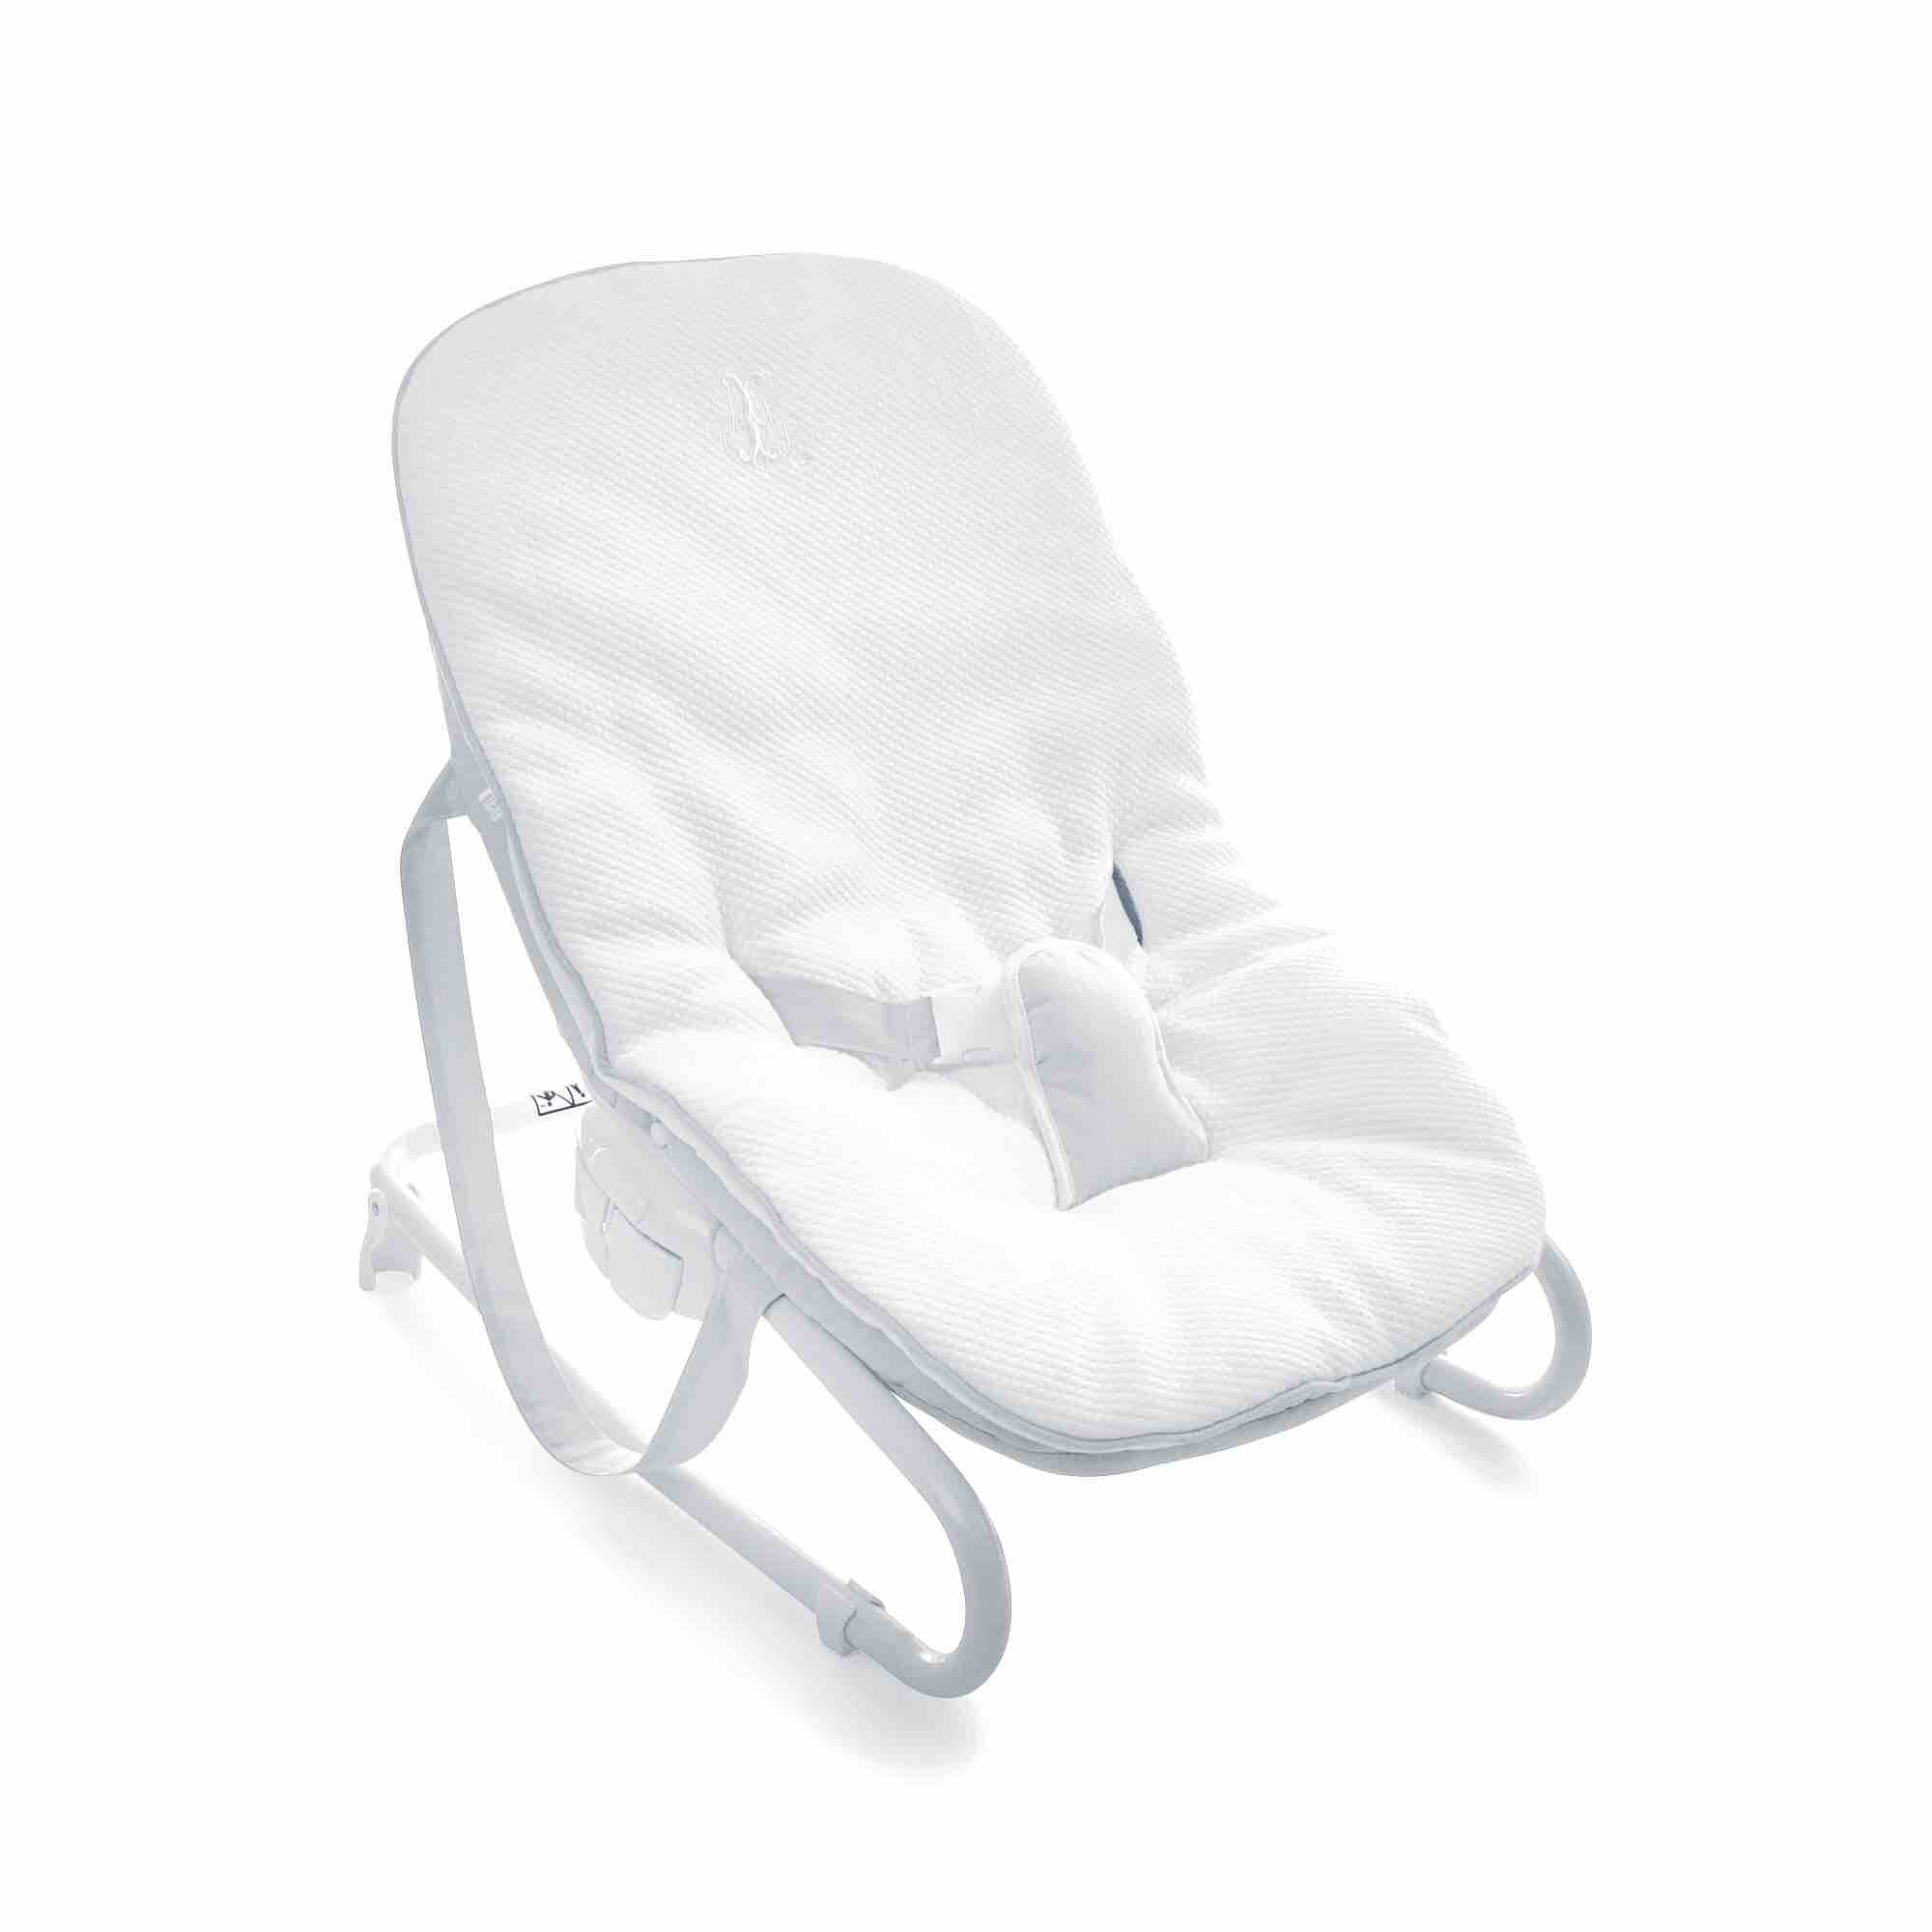 Theophile & Patachou Baby Seat Cover - Pearl